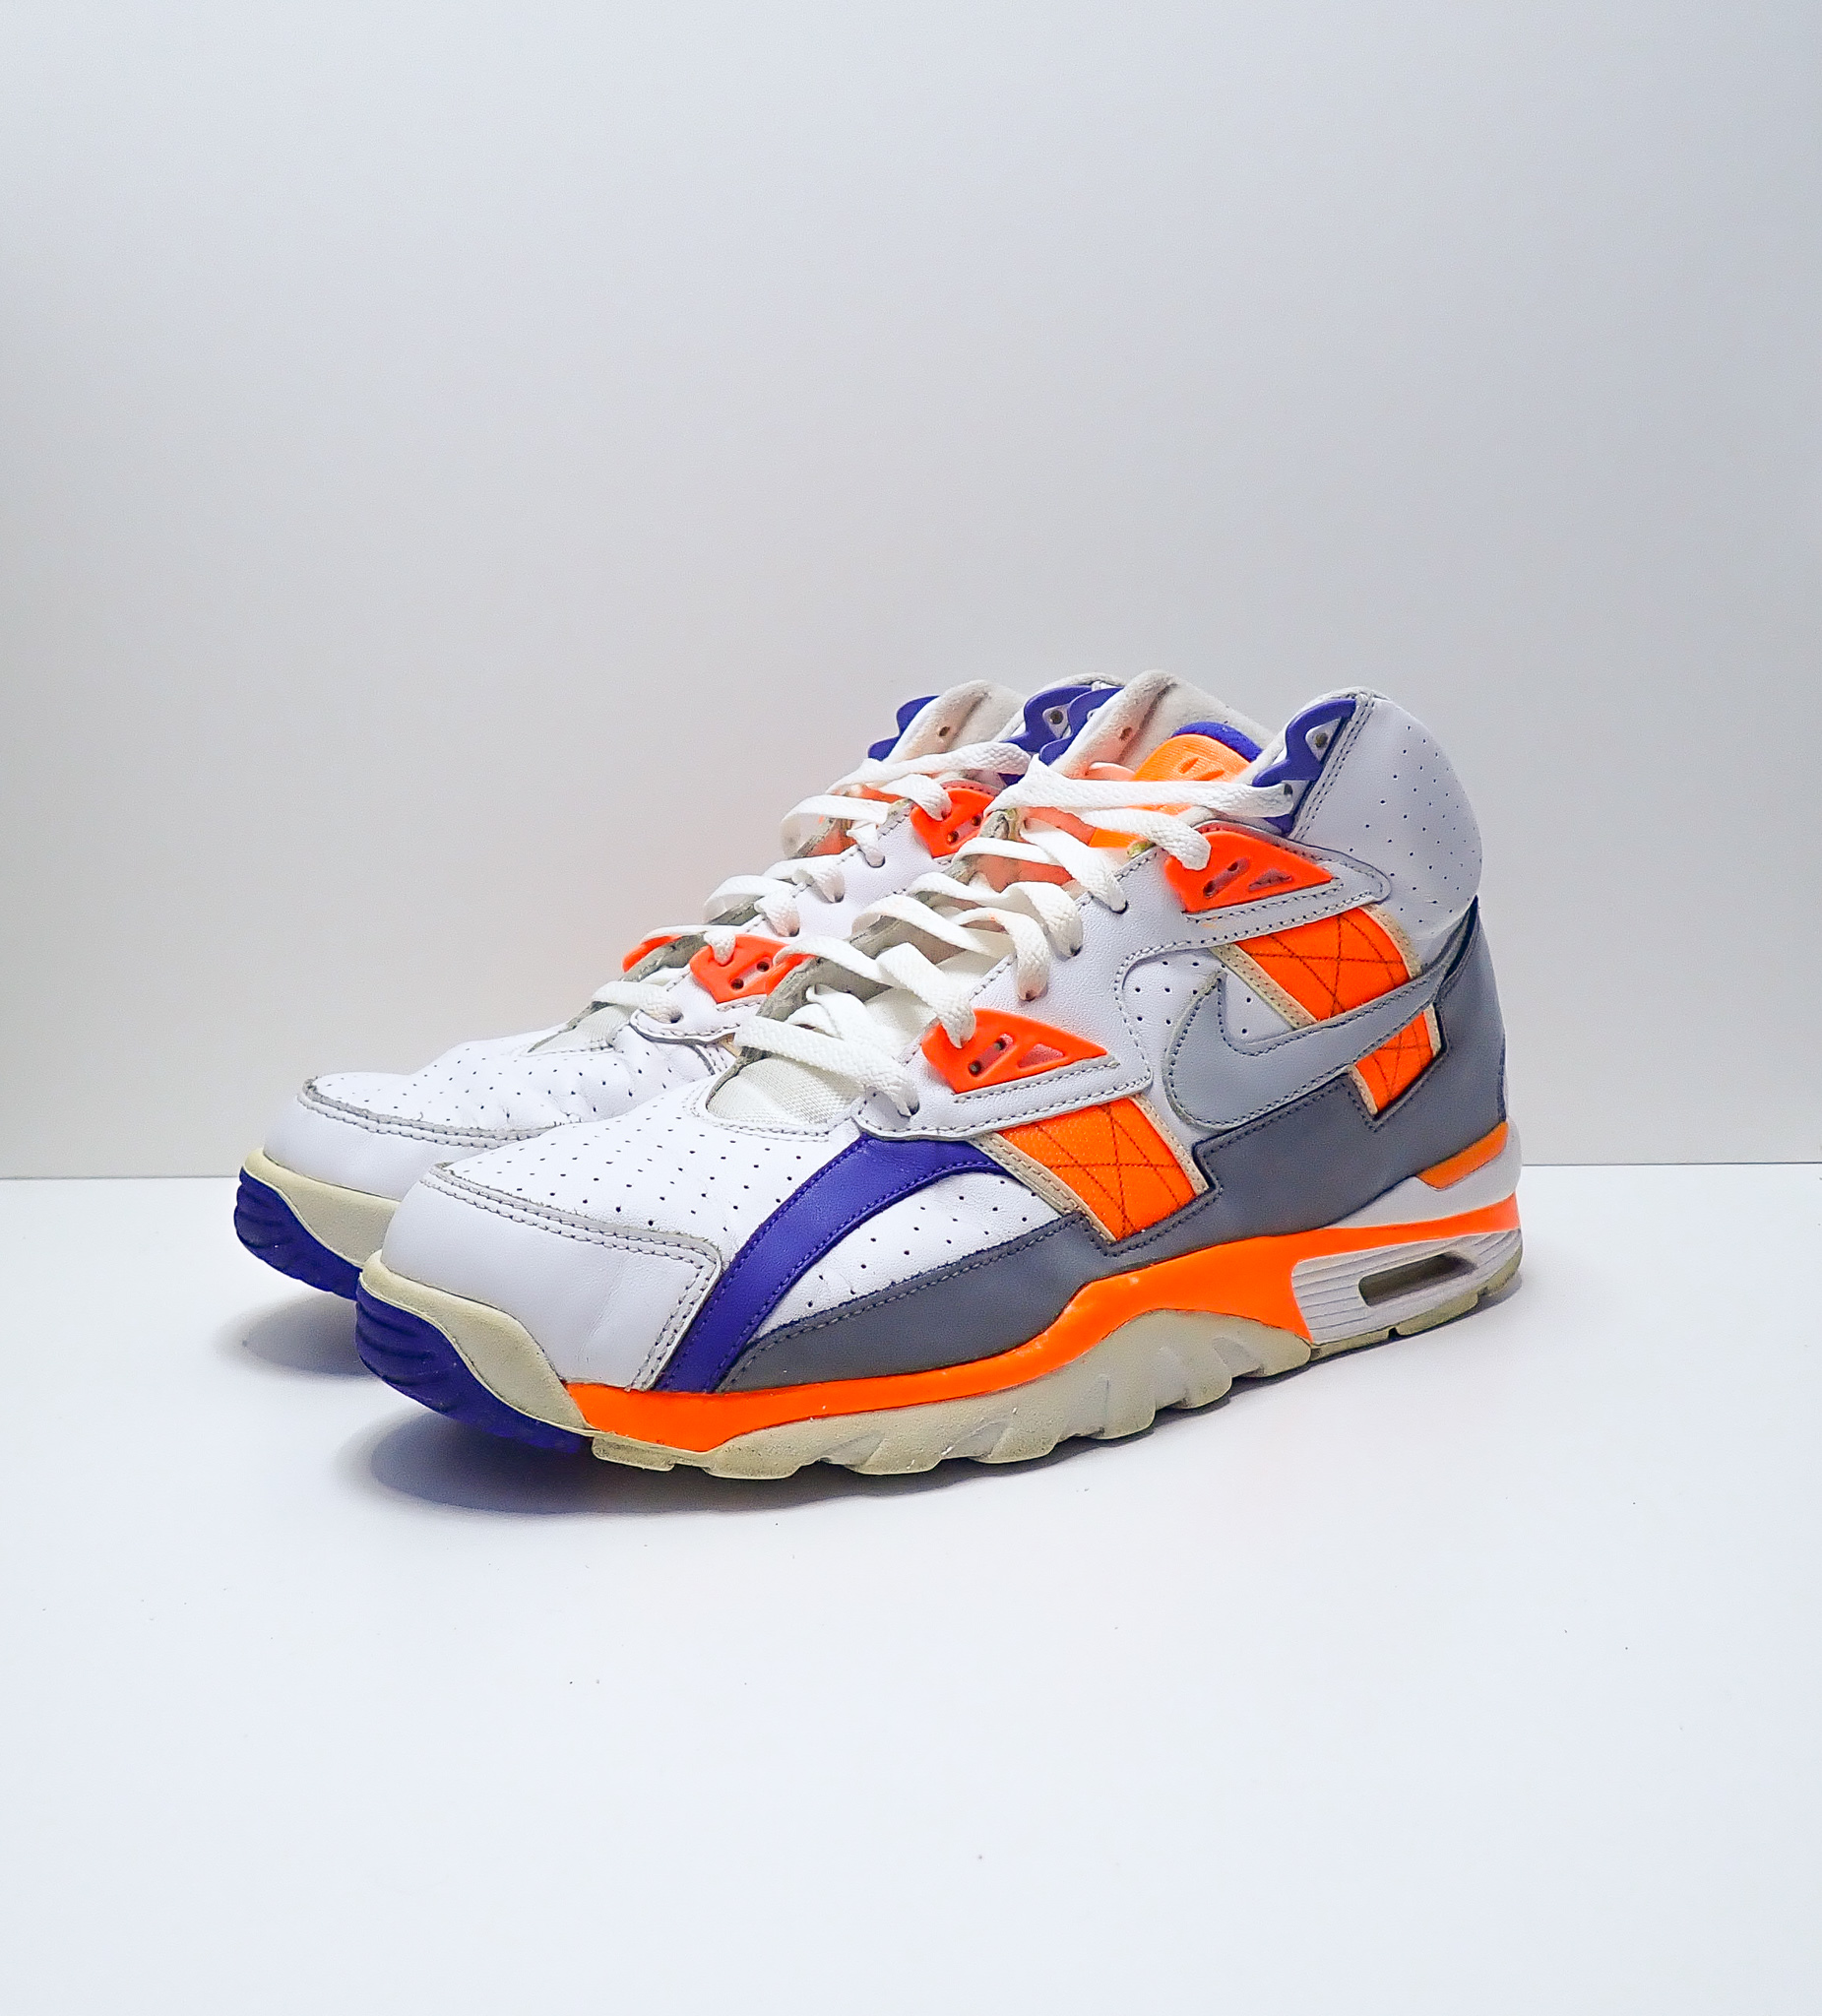 Nike Air Trainer SC High Bo Jackson